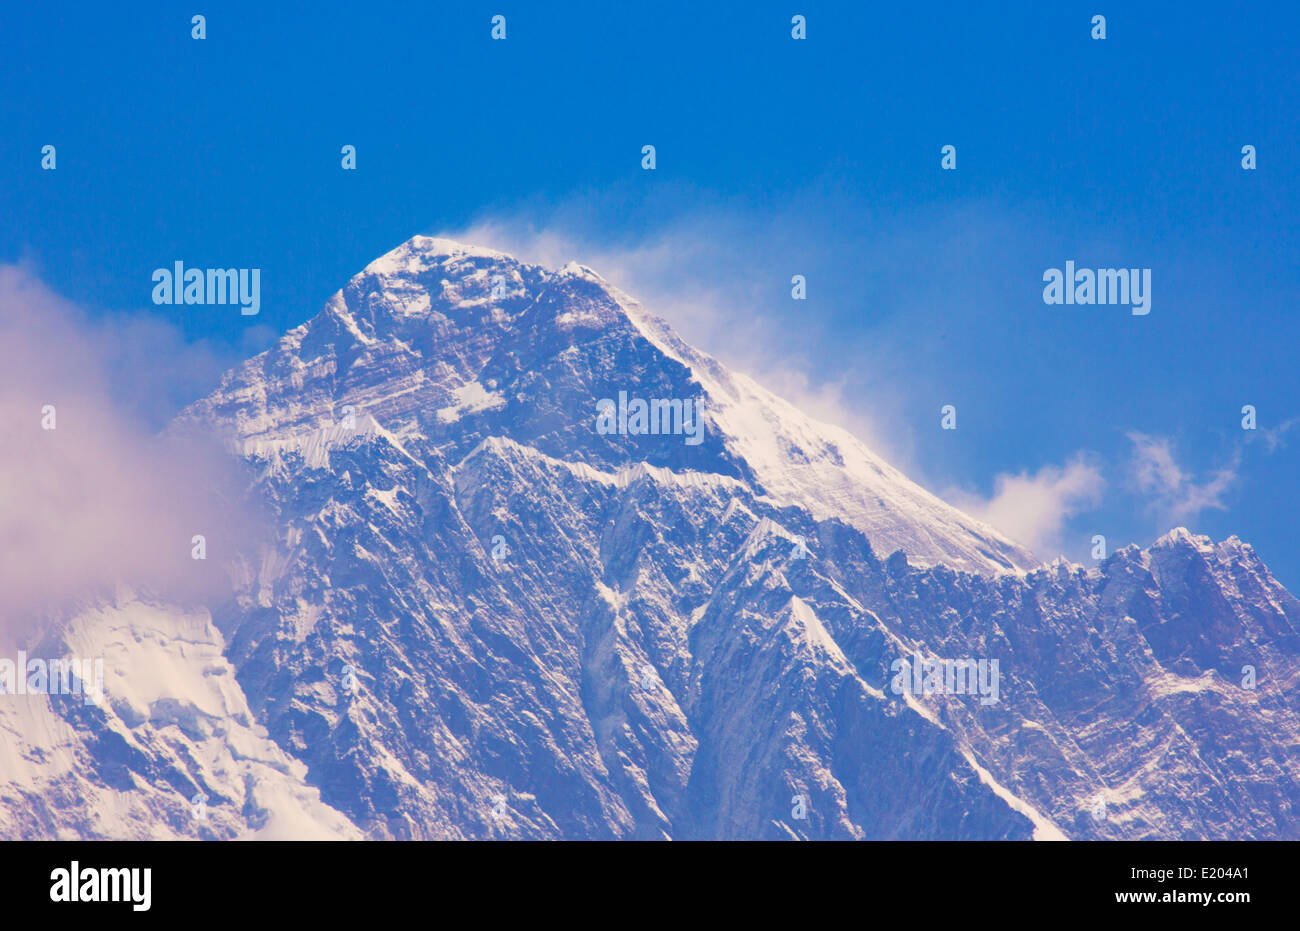 Nepal Himalayas Mountains Mount Everest in the late morning, shot from the look-out point above Namche Bazarre remote - Stock Image